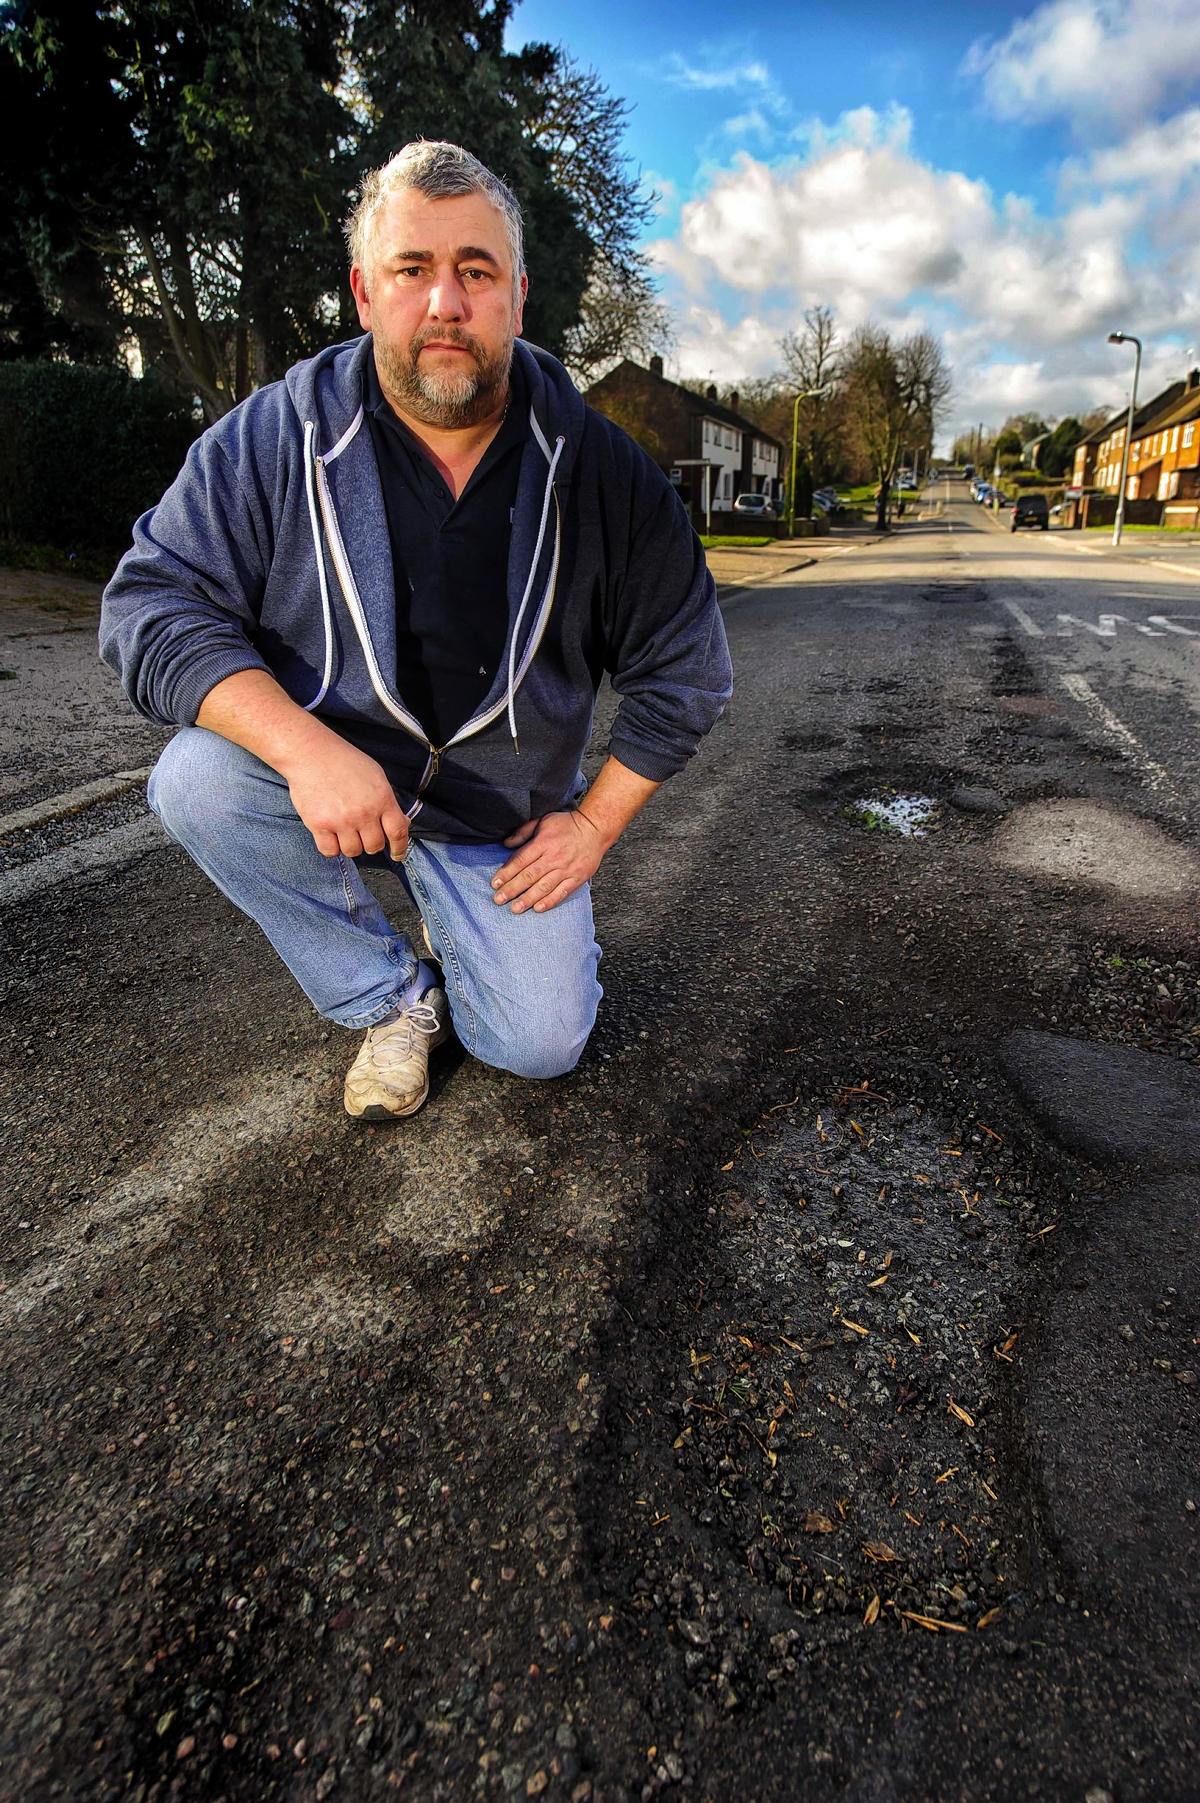 Concern over 'dangerous' South Oxhey road